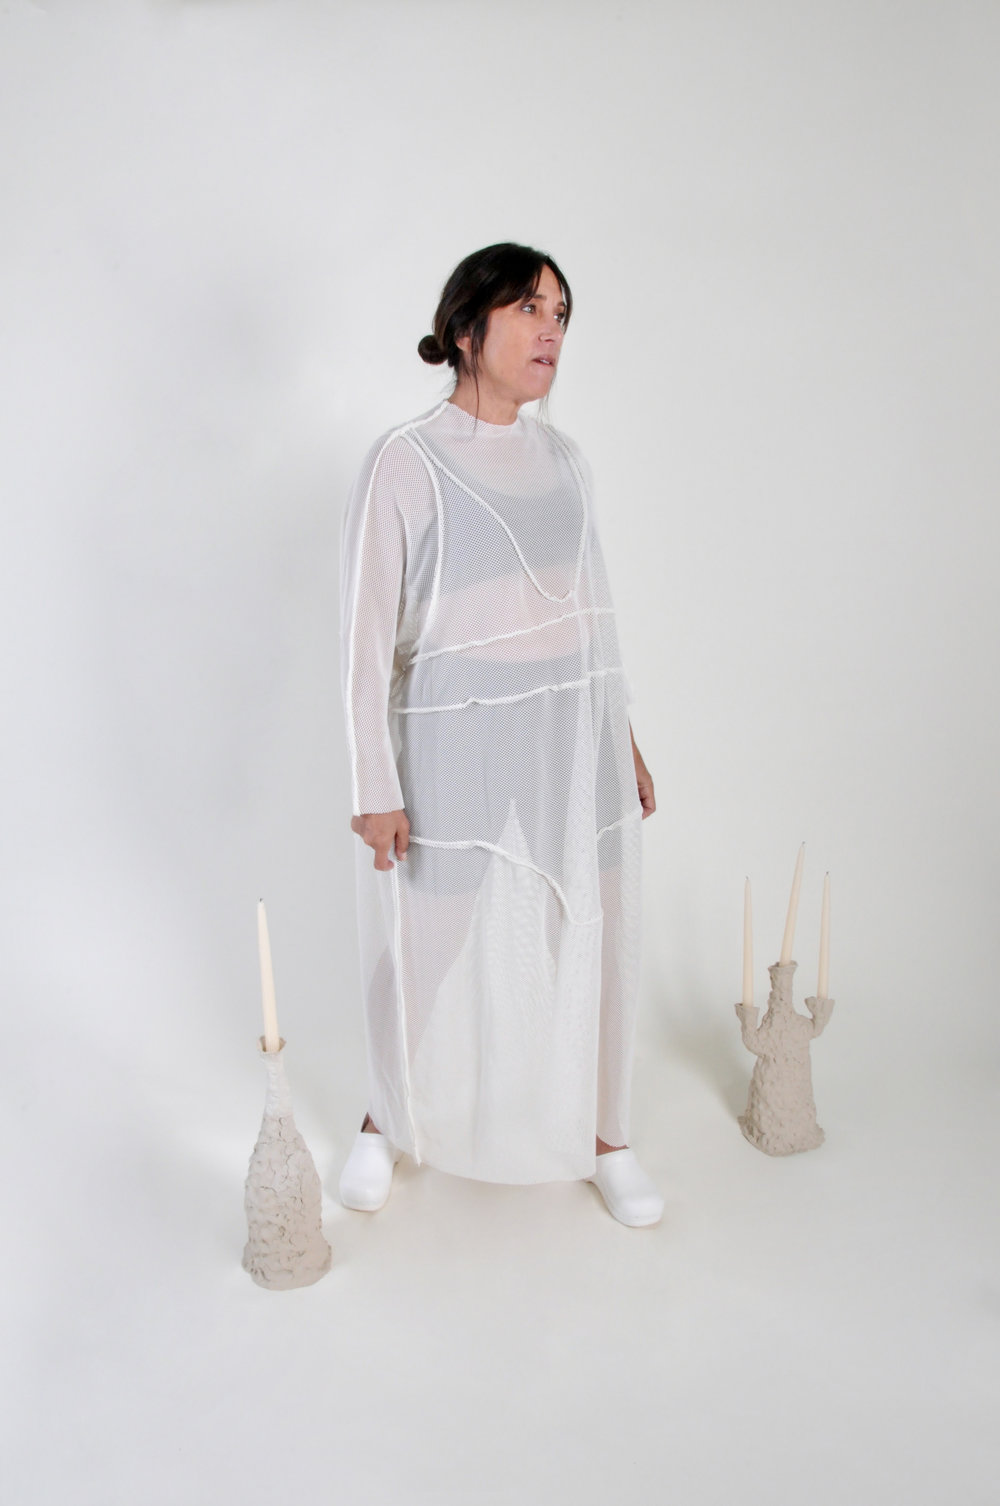 UNDERWEAR DRESS: IVORY NET - 0216COLOR : IVORYFABRIC : DEADSTOCK STRETCH NETCONTENT: COTTON / POLY / RAYON BLENDWHOLESALE $114 / RETAIL $228SIZES : ONE SIZE / FITS XS - XL